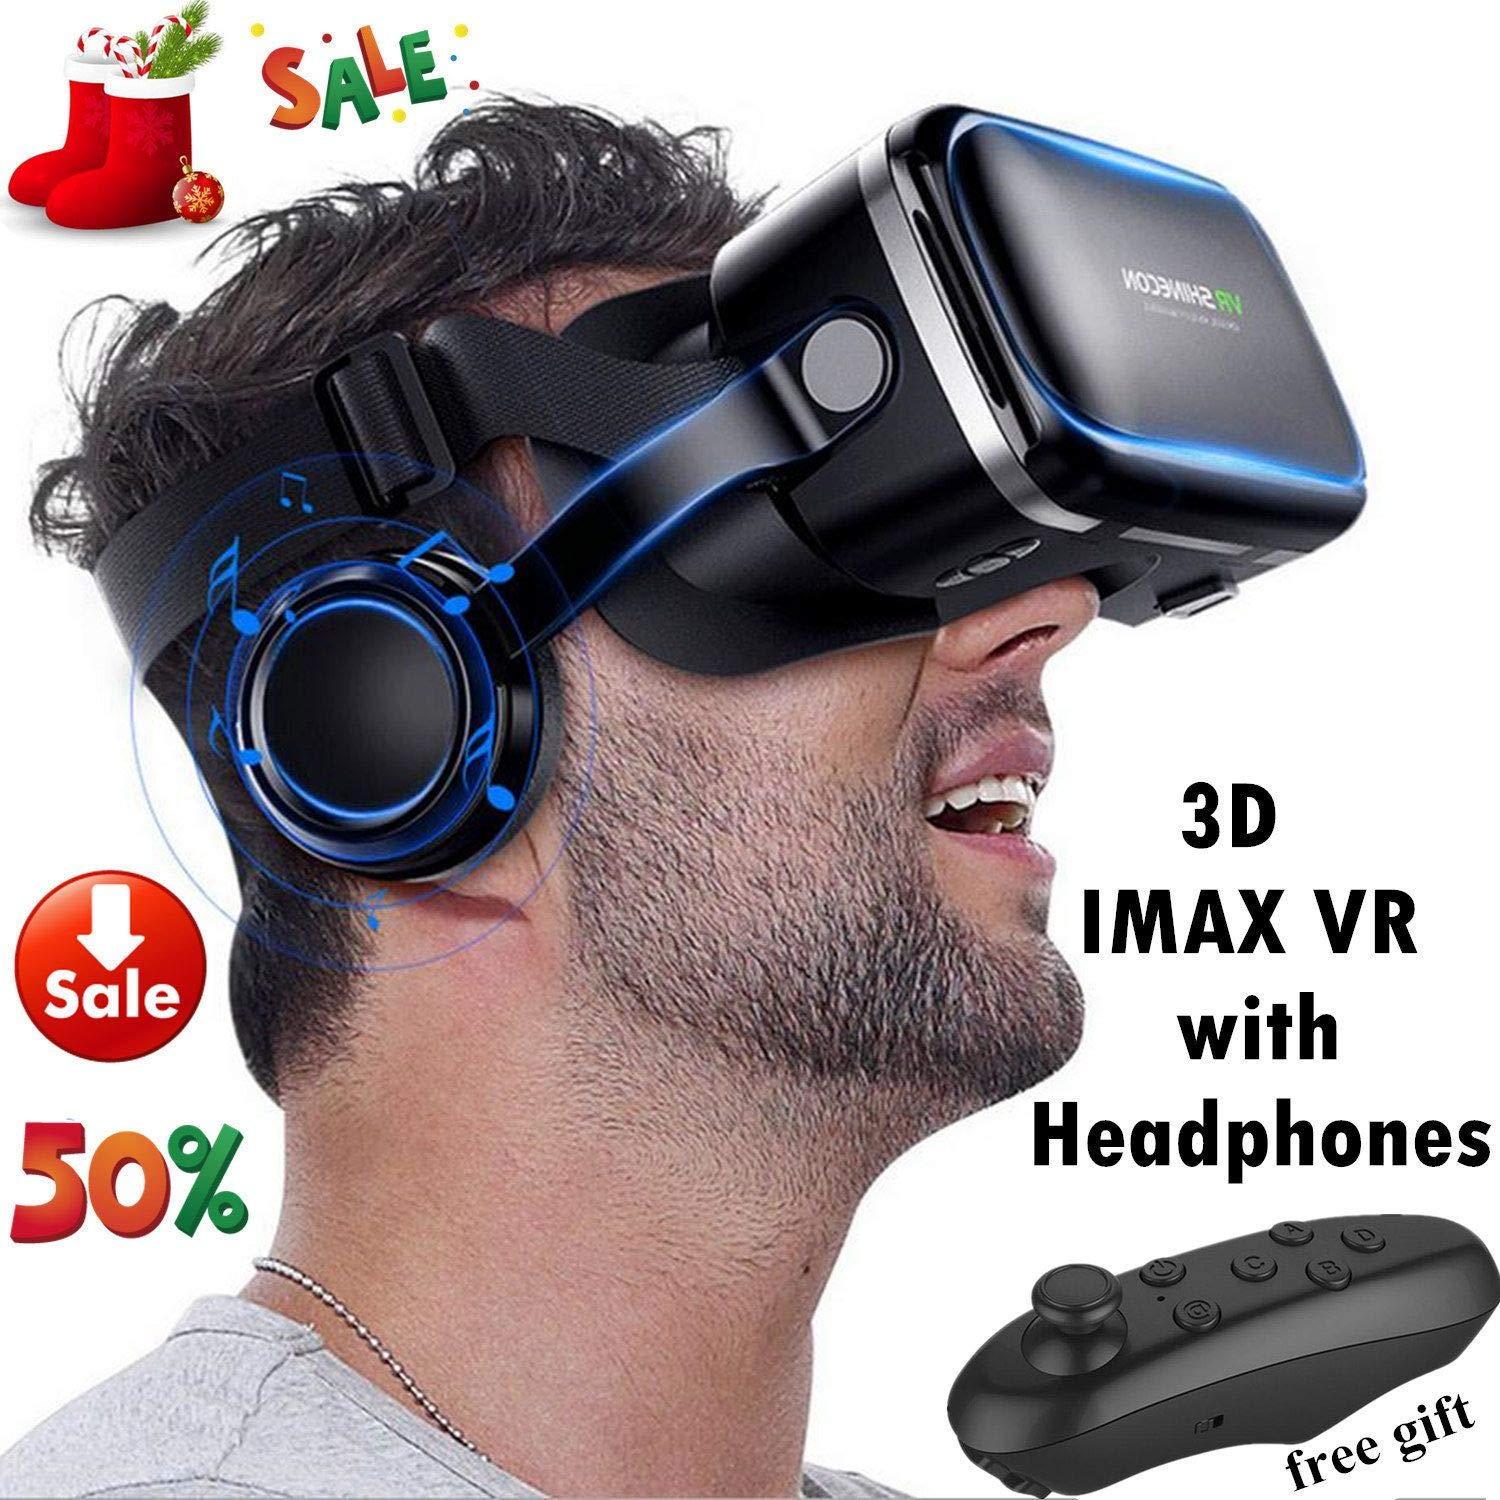 VR Headset Glasses, 3D Virtual Reality Headset with Headphones[HIFI] for IOS Android PC Cellphone 3D IMAX Movie Video Game Viewer, VR Goggles for iPhone X 8 7 6S 6 Plus, Samsung S8 S7 S6 Edge S5 etc by TSANGLIGHT